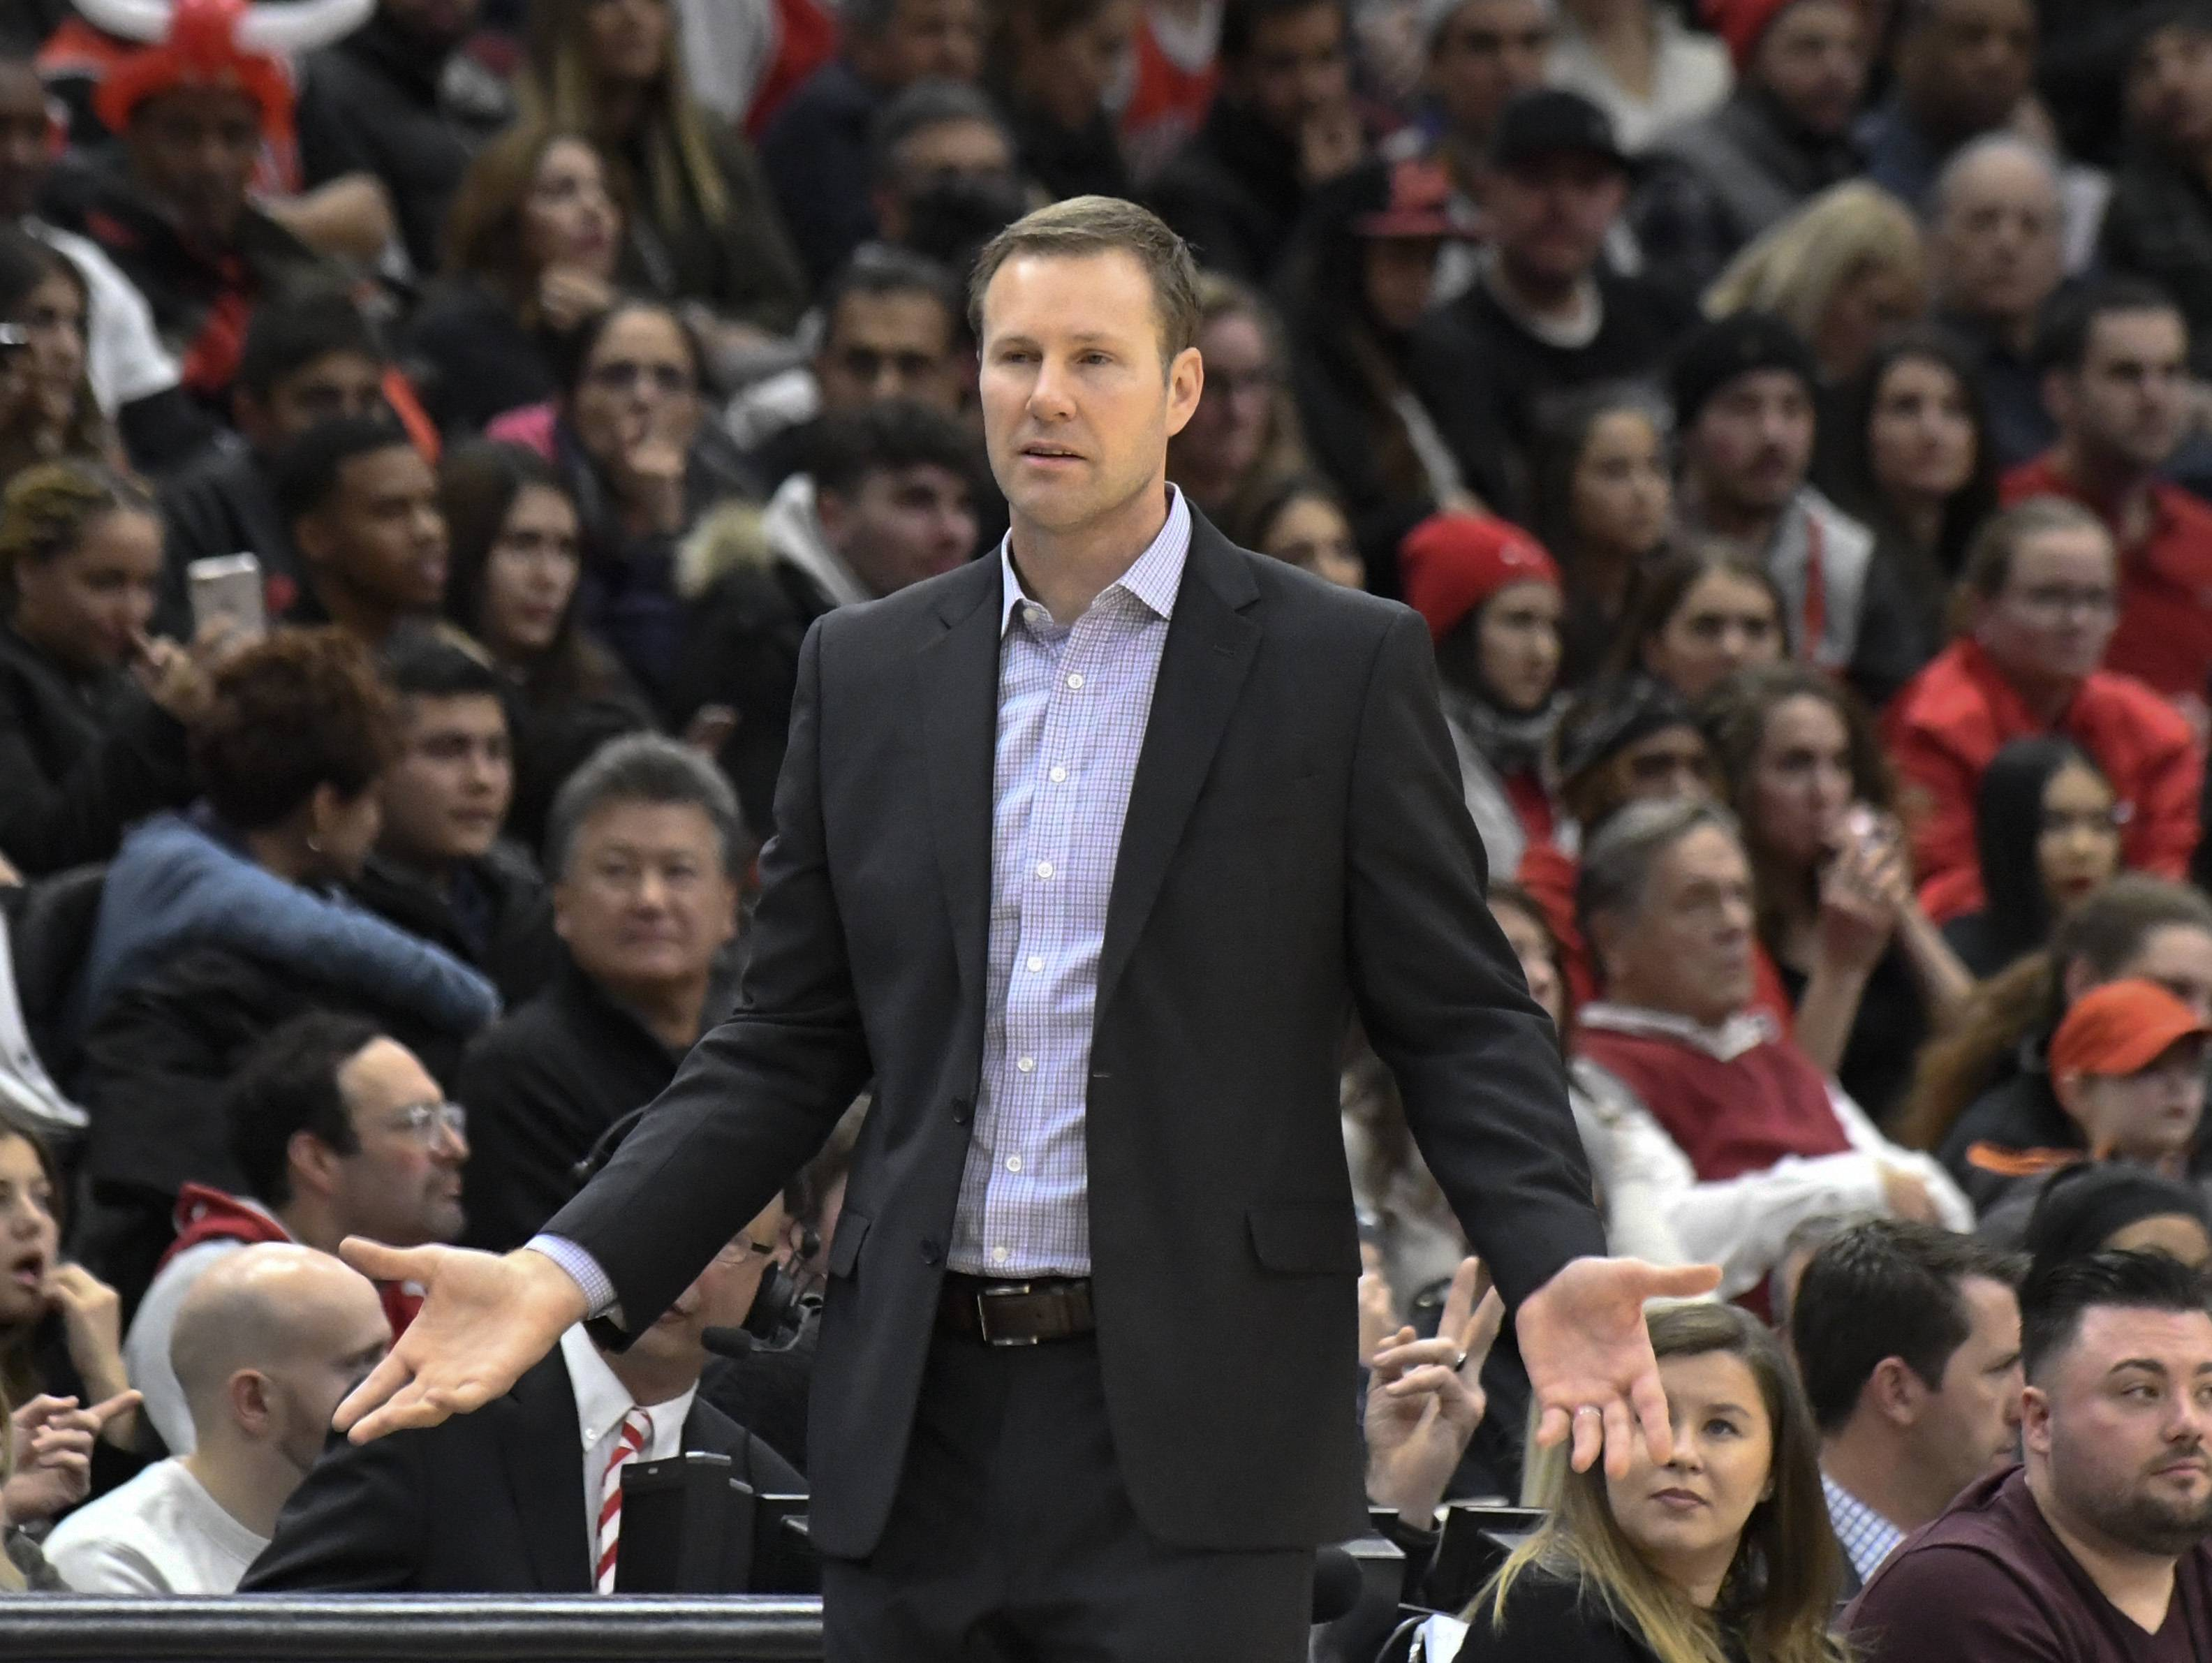 Chicago Bulls head coach Fred Hoiberg questions a call during the second half of an NBA basketball game, Monday, Jan. 1, 2018, in Chicago. The Trail Blazers won 124-120 in overtime. (AP Photo/David Banks)